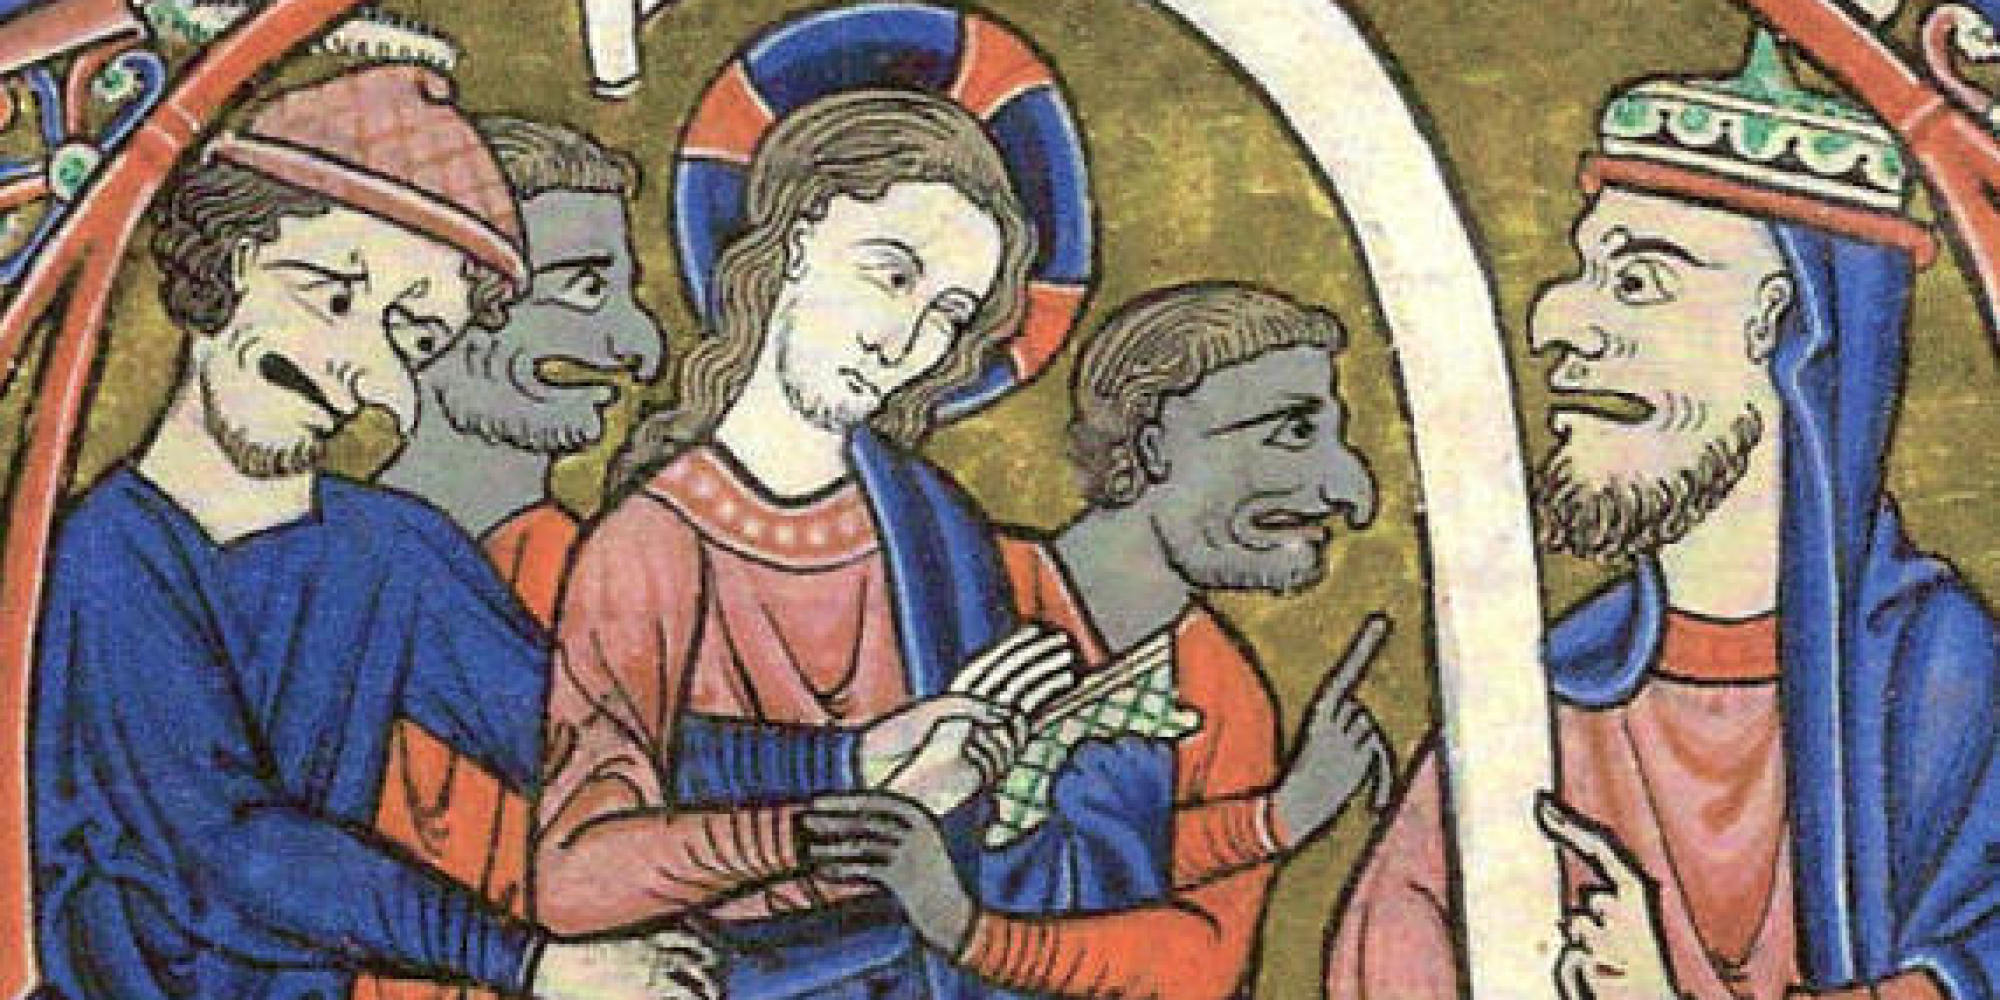 Five stages of anti semitism in art from medieval to modern five stages of anti semitism in art from medieval to modern times huffpost biocorpaavc Image collections